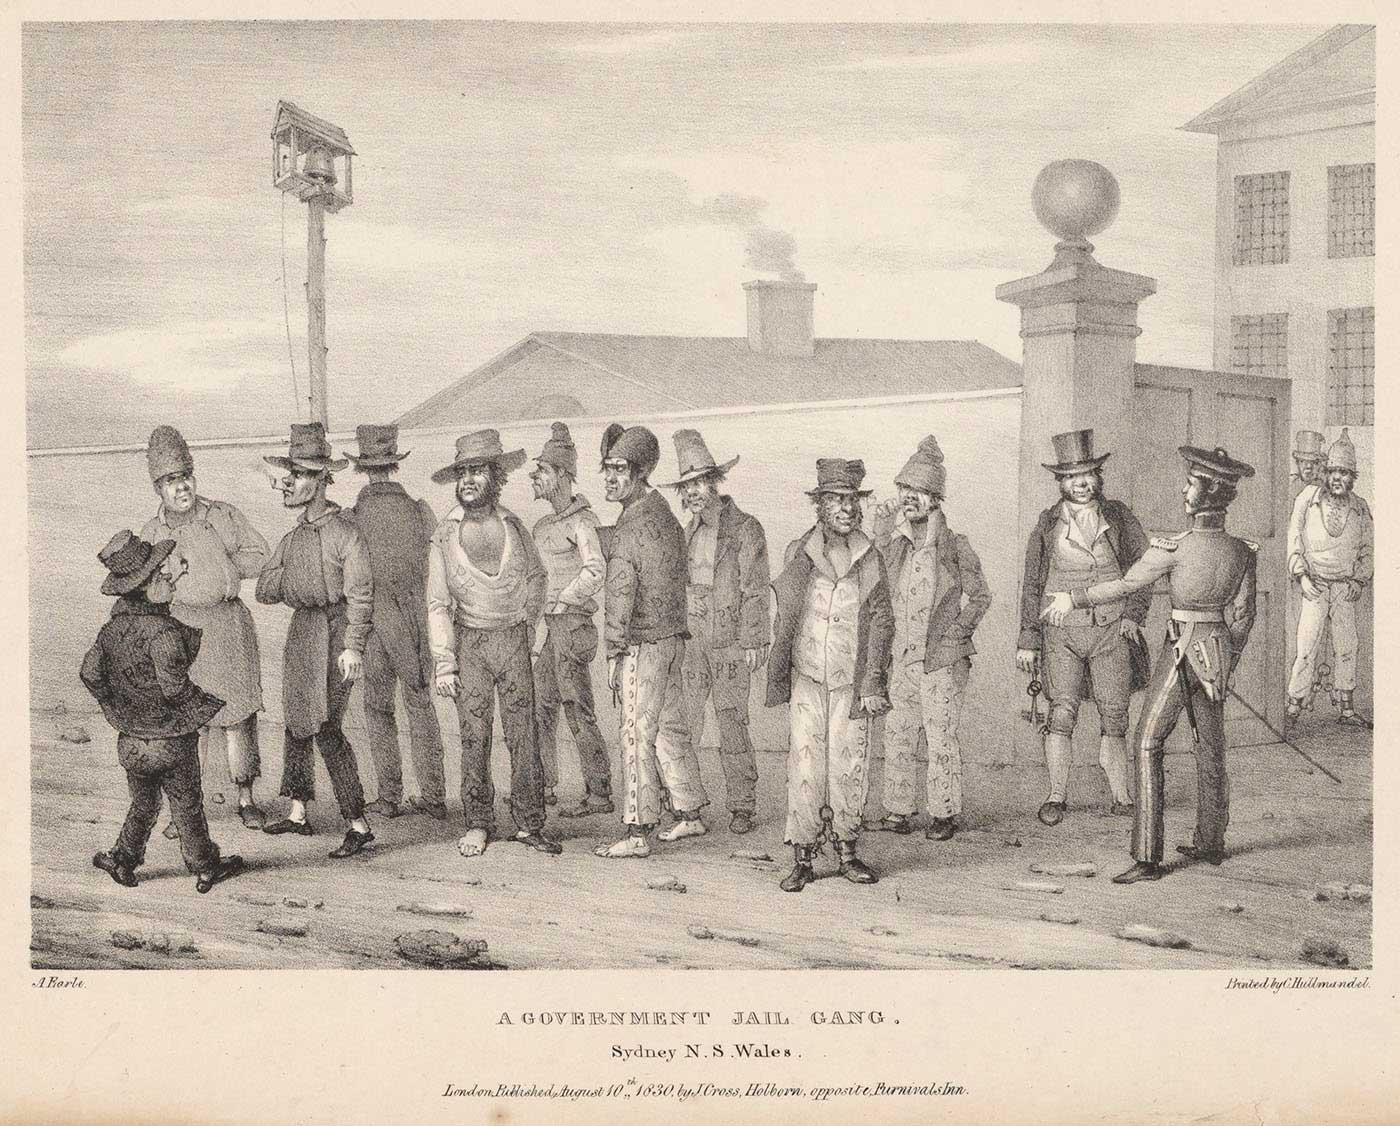 Illustration of convicts and guards standing on the grounds of a jail.